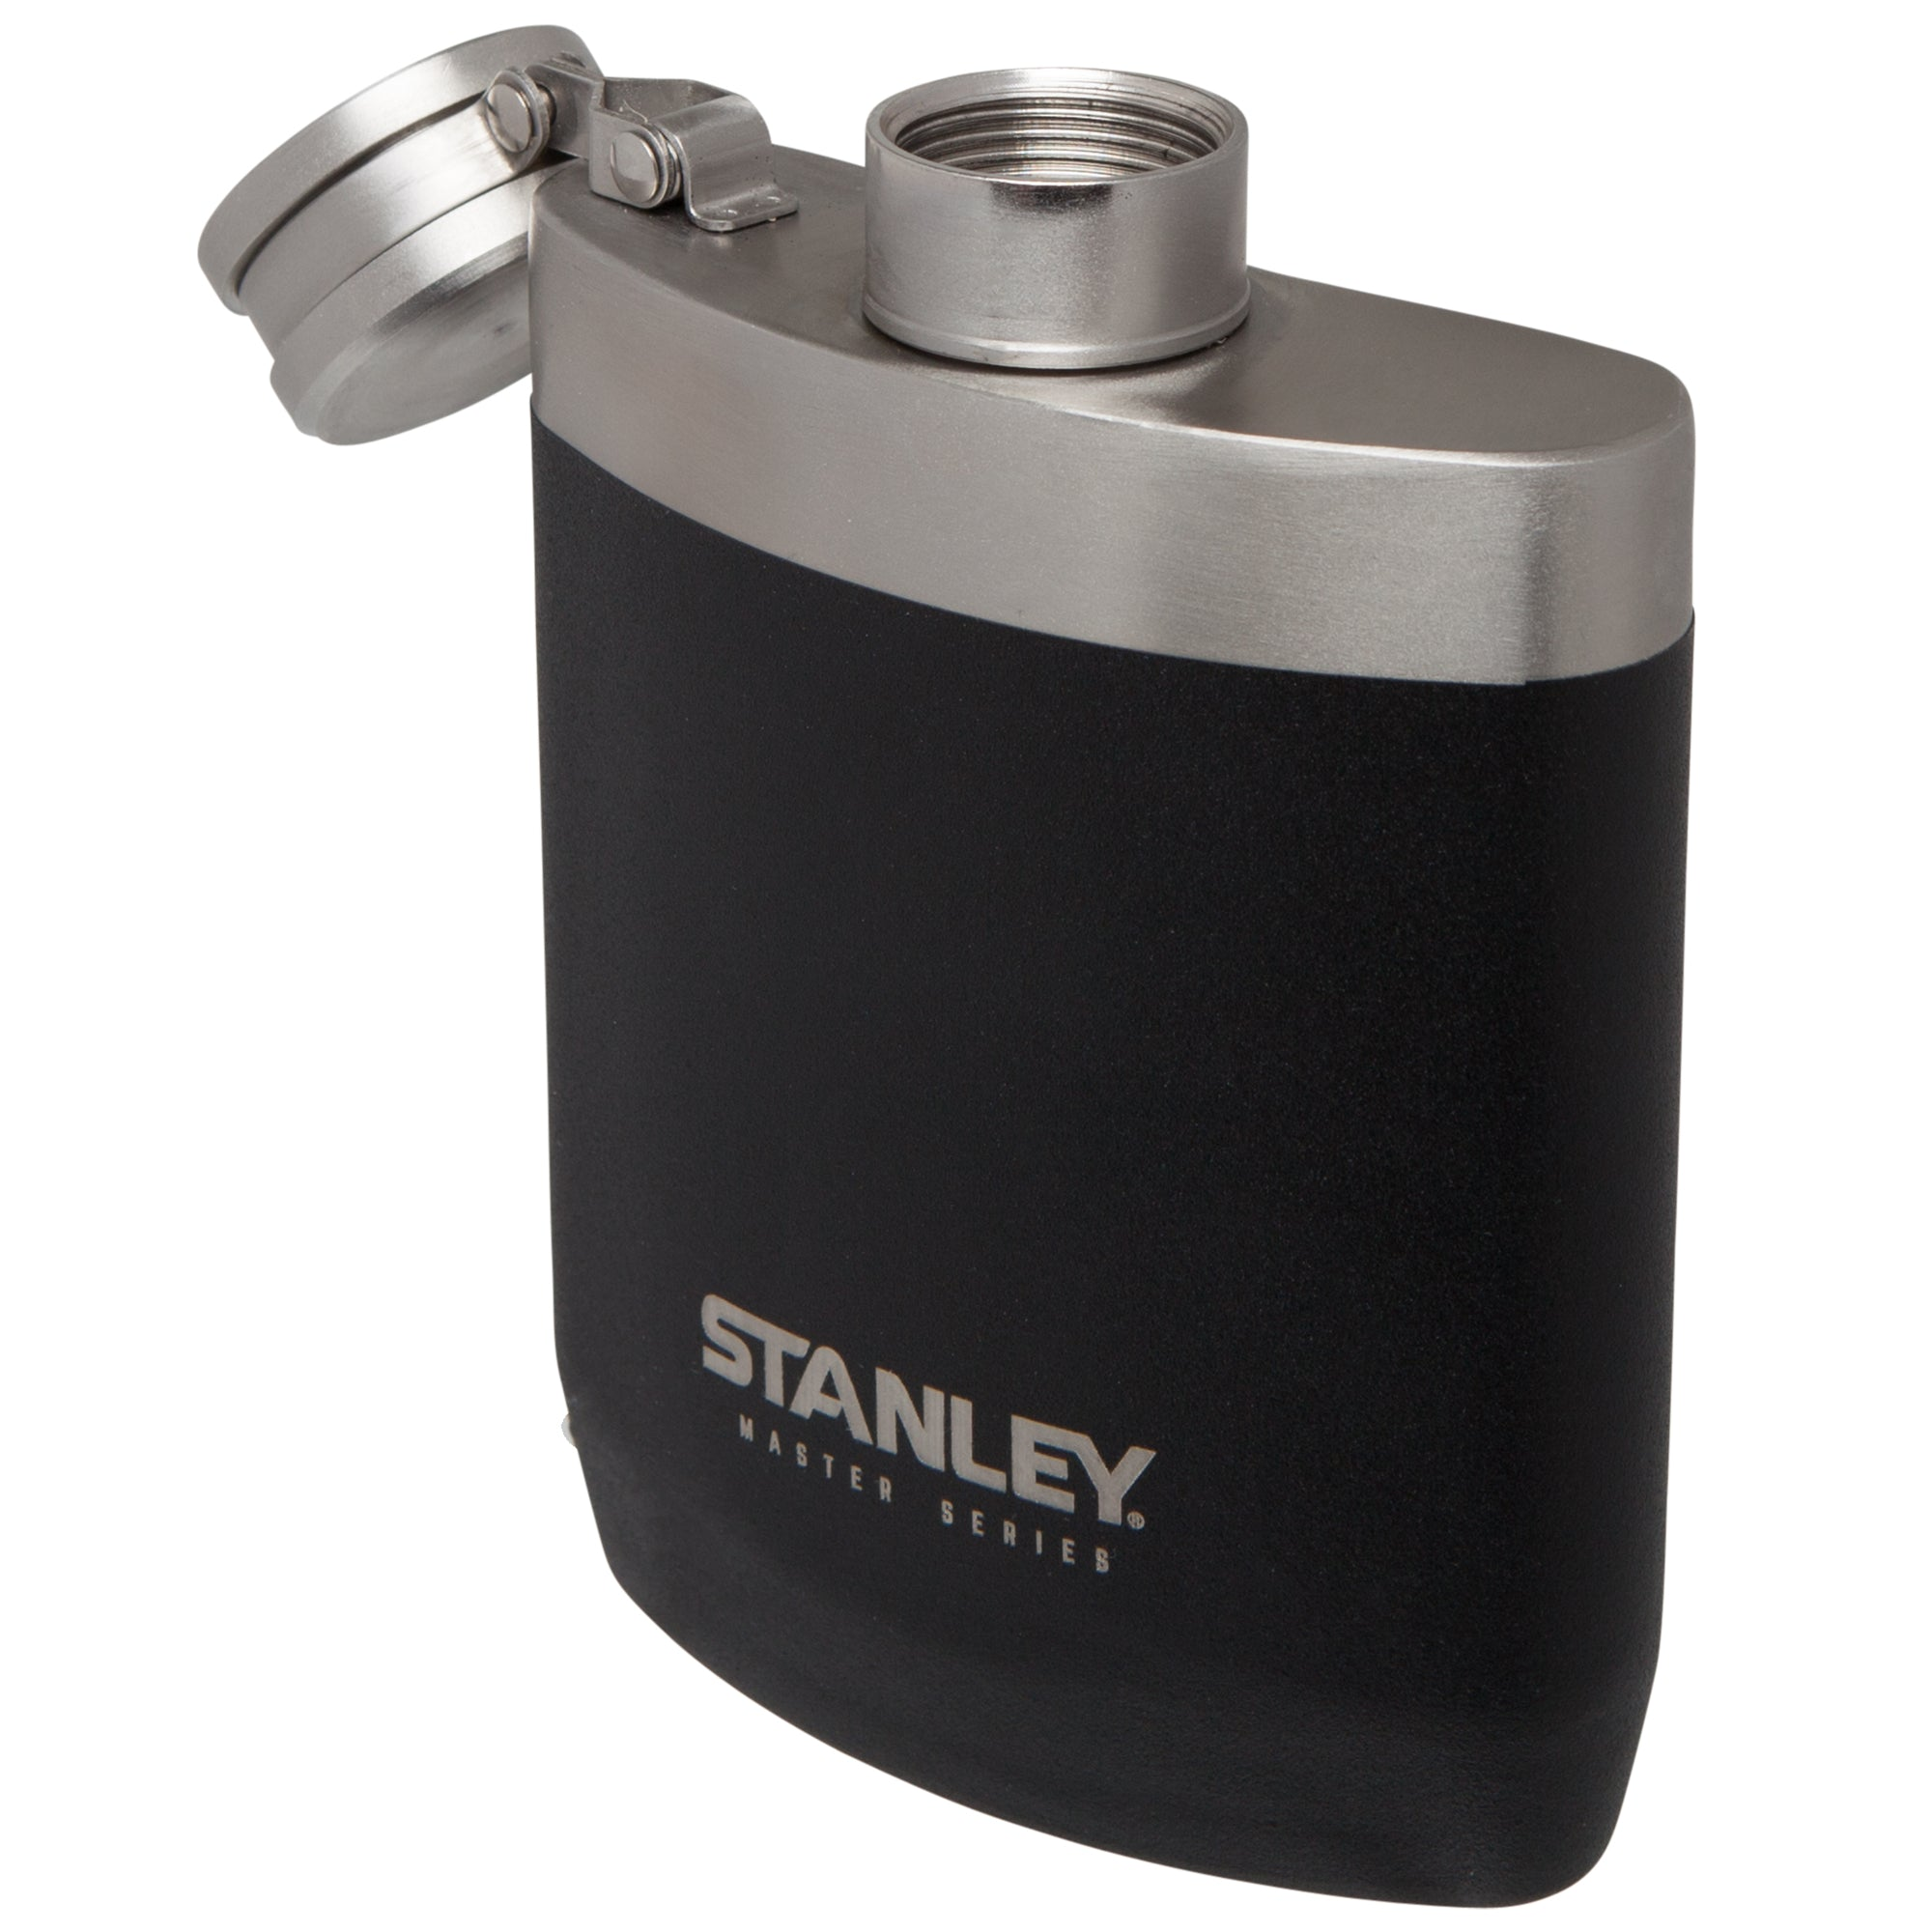 Shop for Stanley at Stanley Master Flask 8oz 236ml Toughest of the Tough at Gearaholic.com.sg